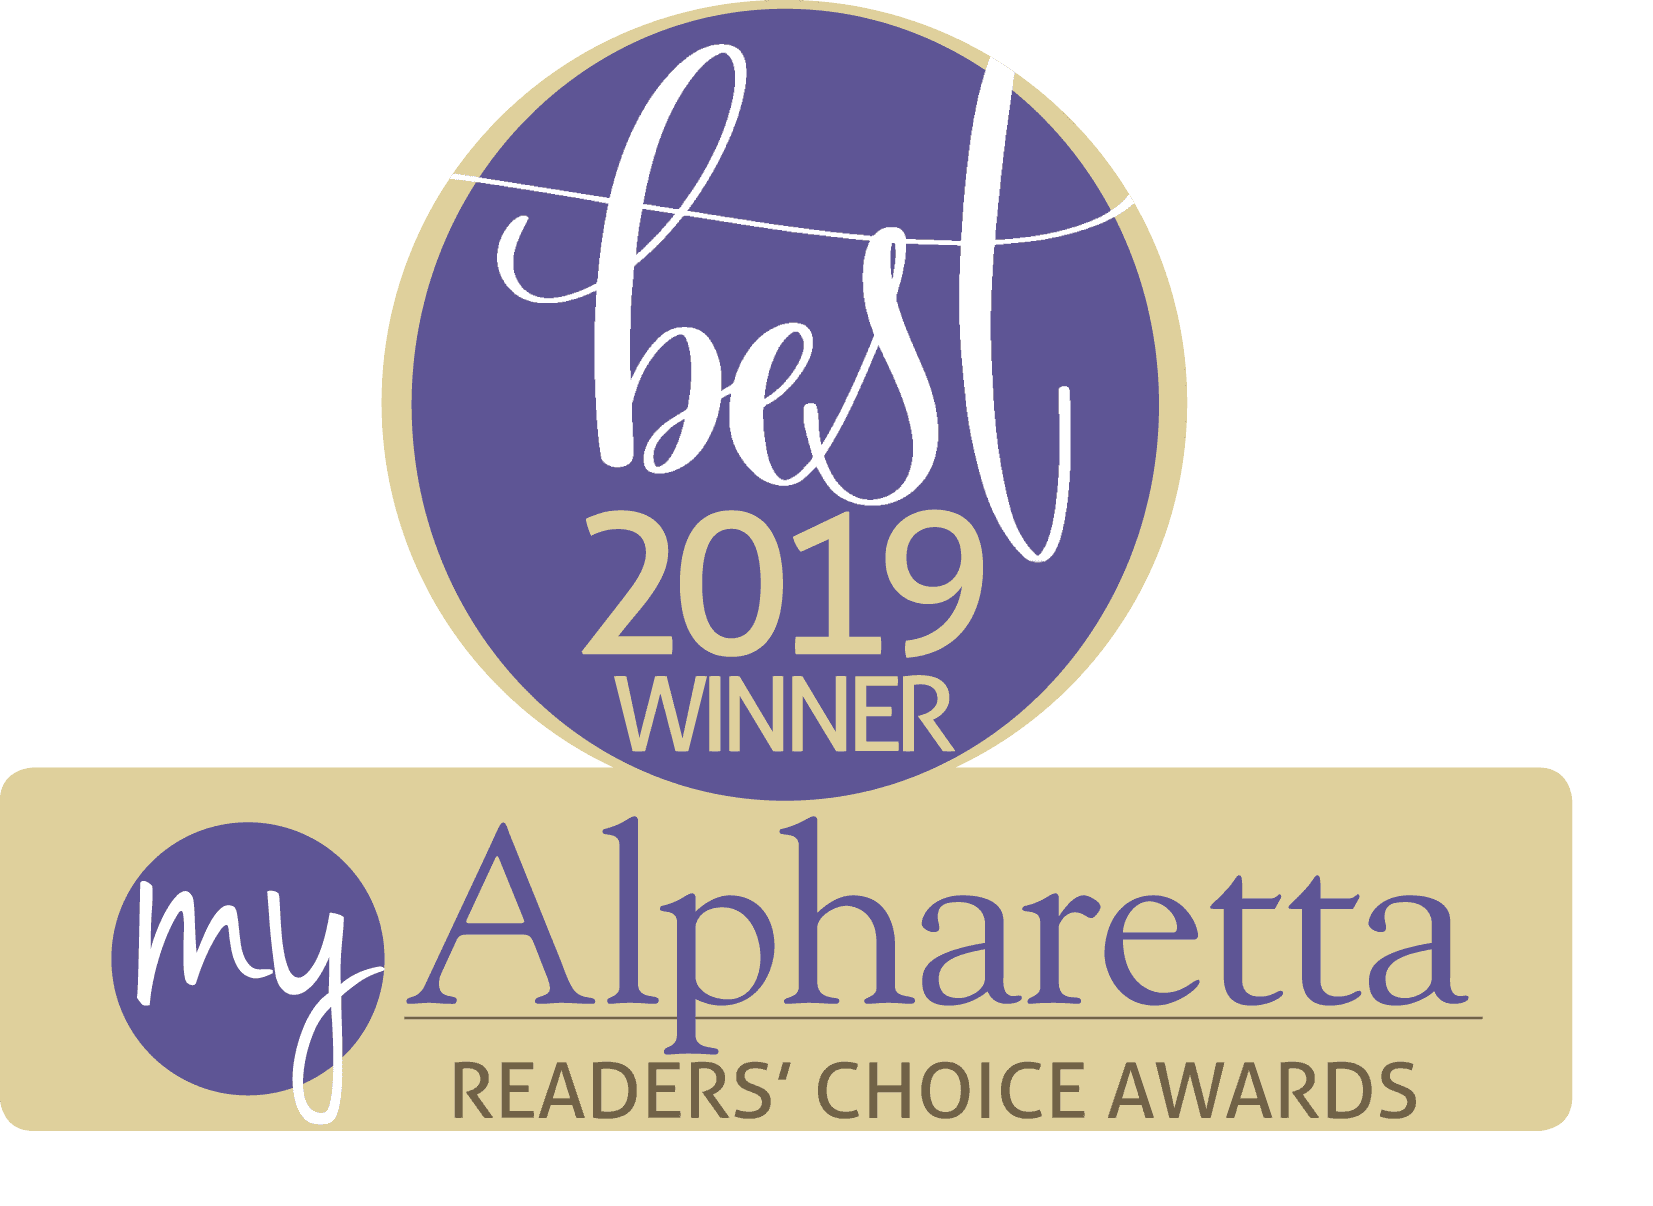 Best 2019 Winner - My Alpharetta Reader's Choice Awards